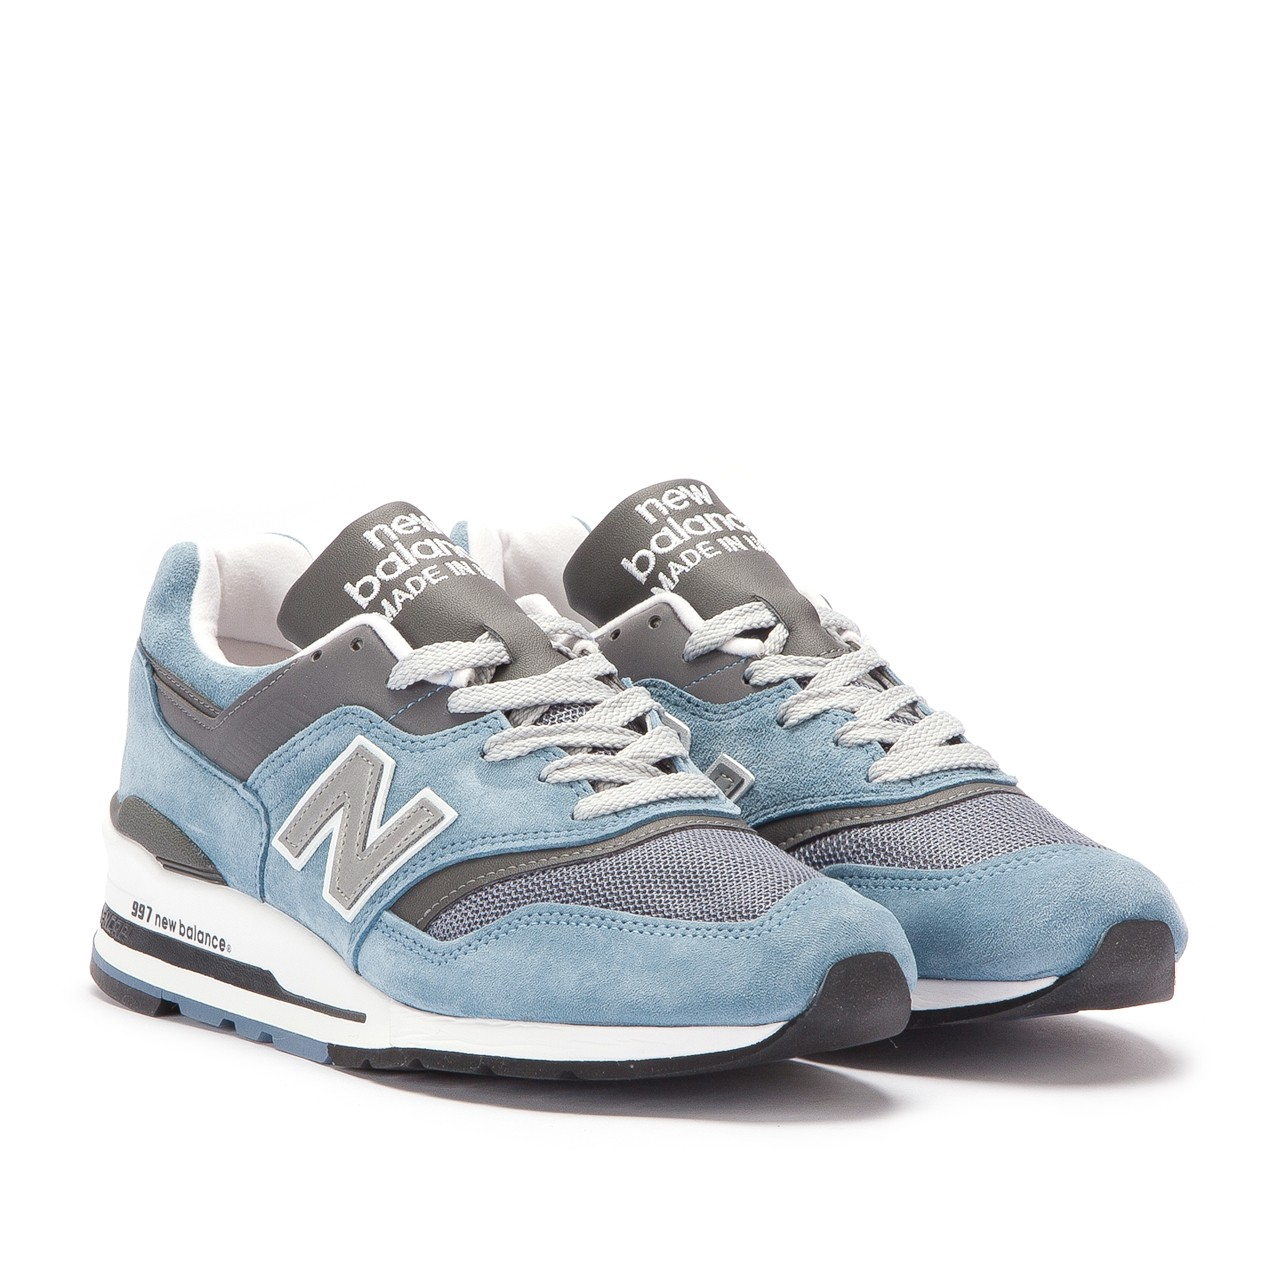 competitive price f5b74 2c66d New Balance M 997 CSP Made in USA (Blue / Grey)